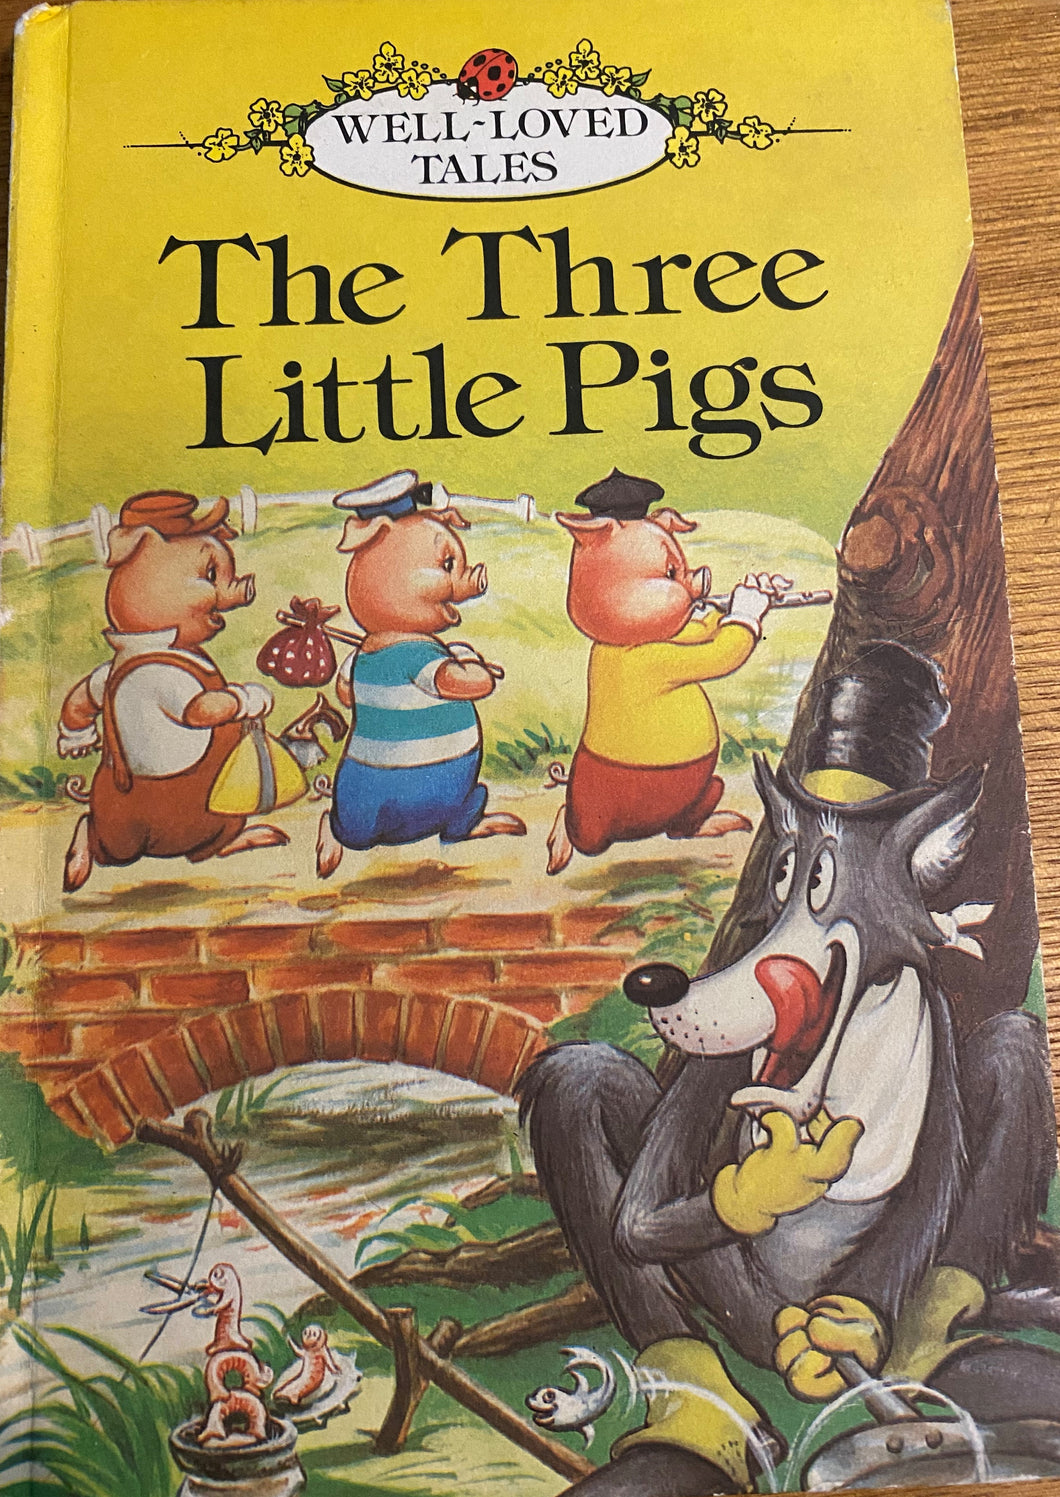 The Three Little Pigs (1 January 1981 - 30 June 1982)